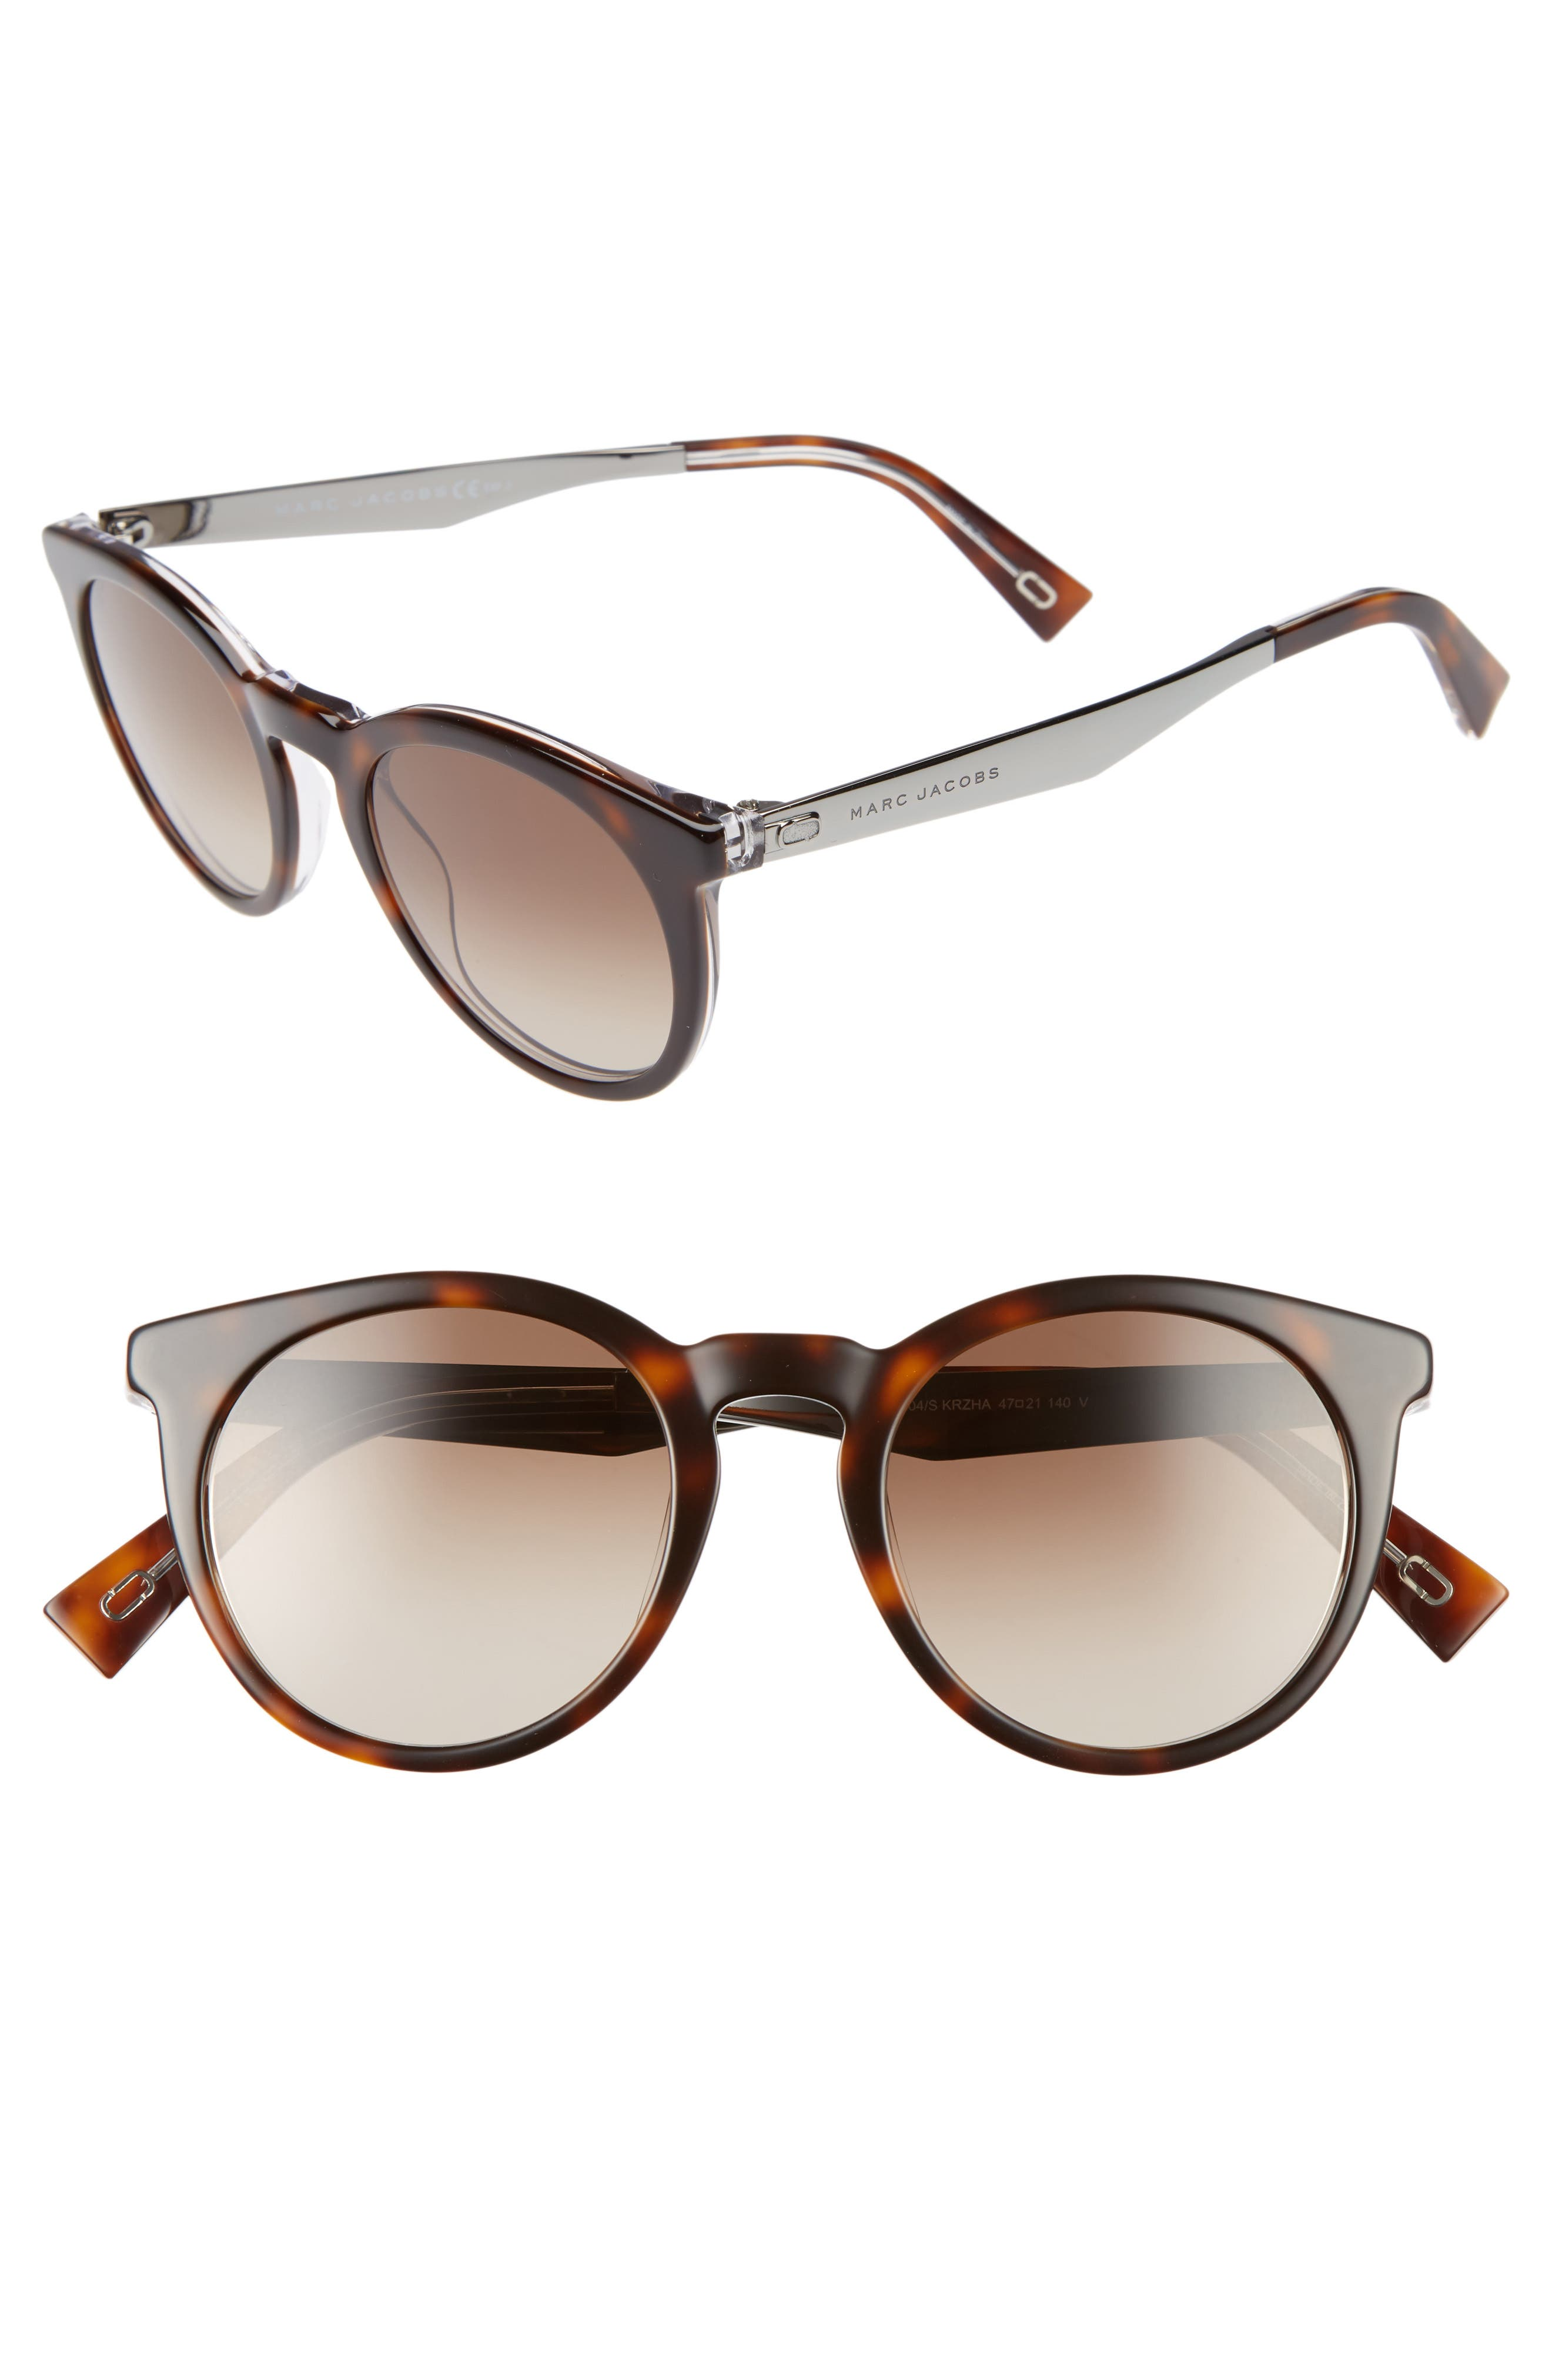 Alternate Image 1 Selected - MARC JACOBS 47mm Keyhole Sunglasses